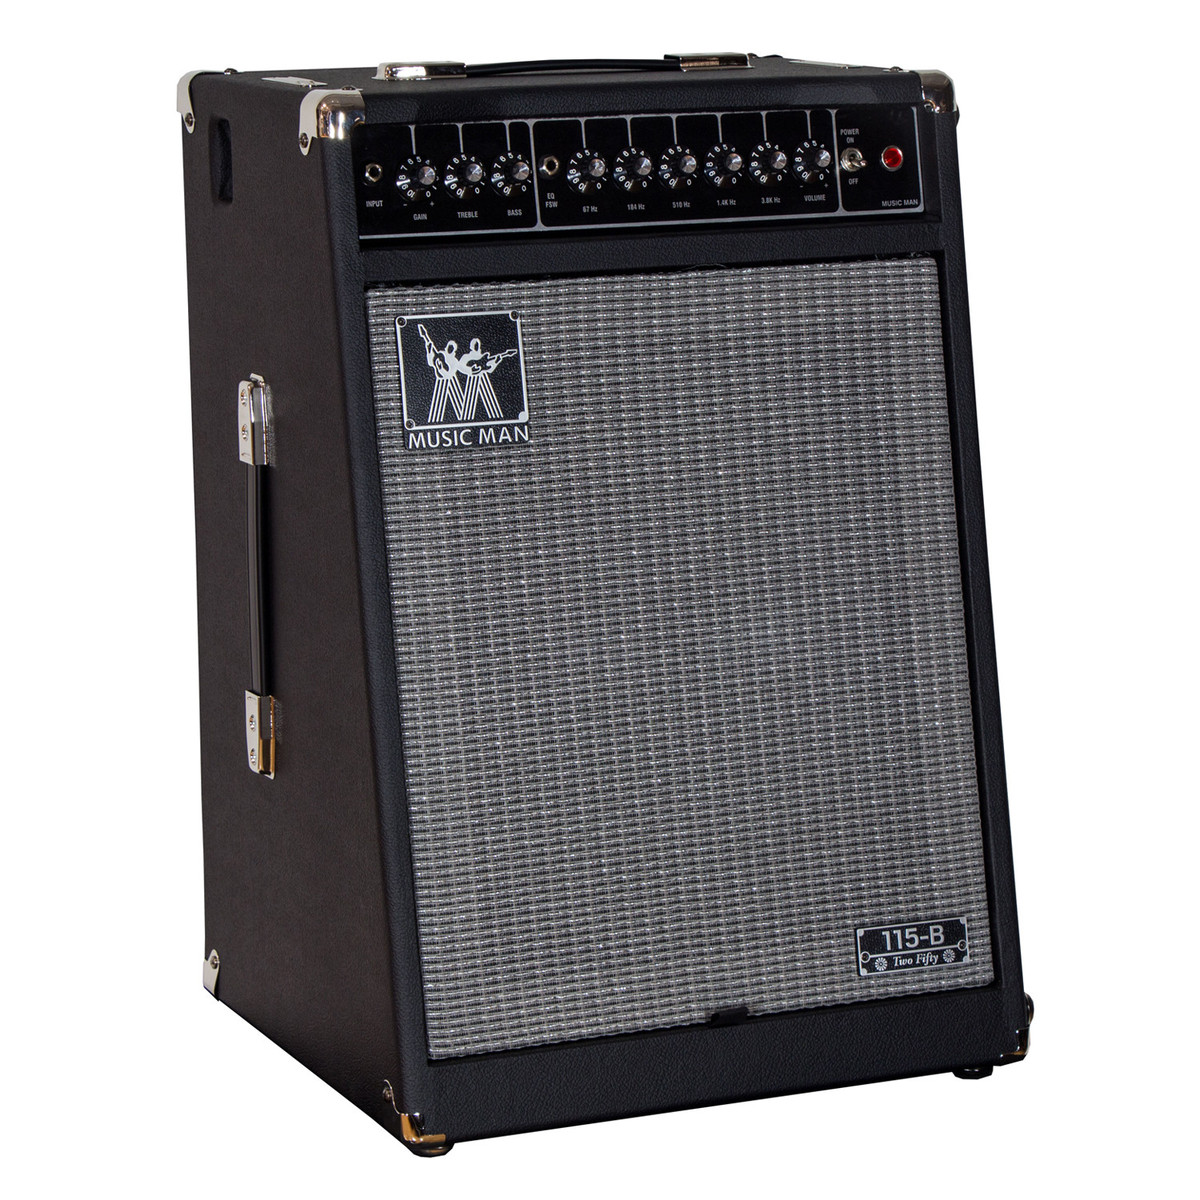 Music Man 115 B250 Bass Amp - Nearly New ...